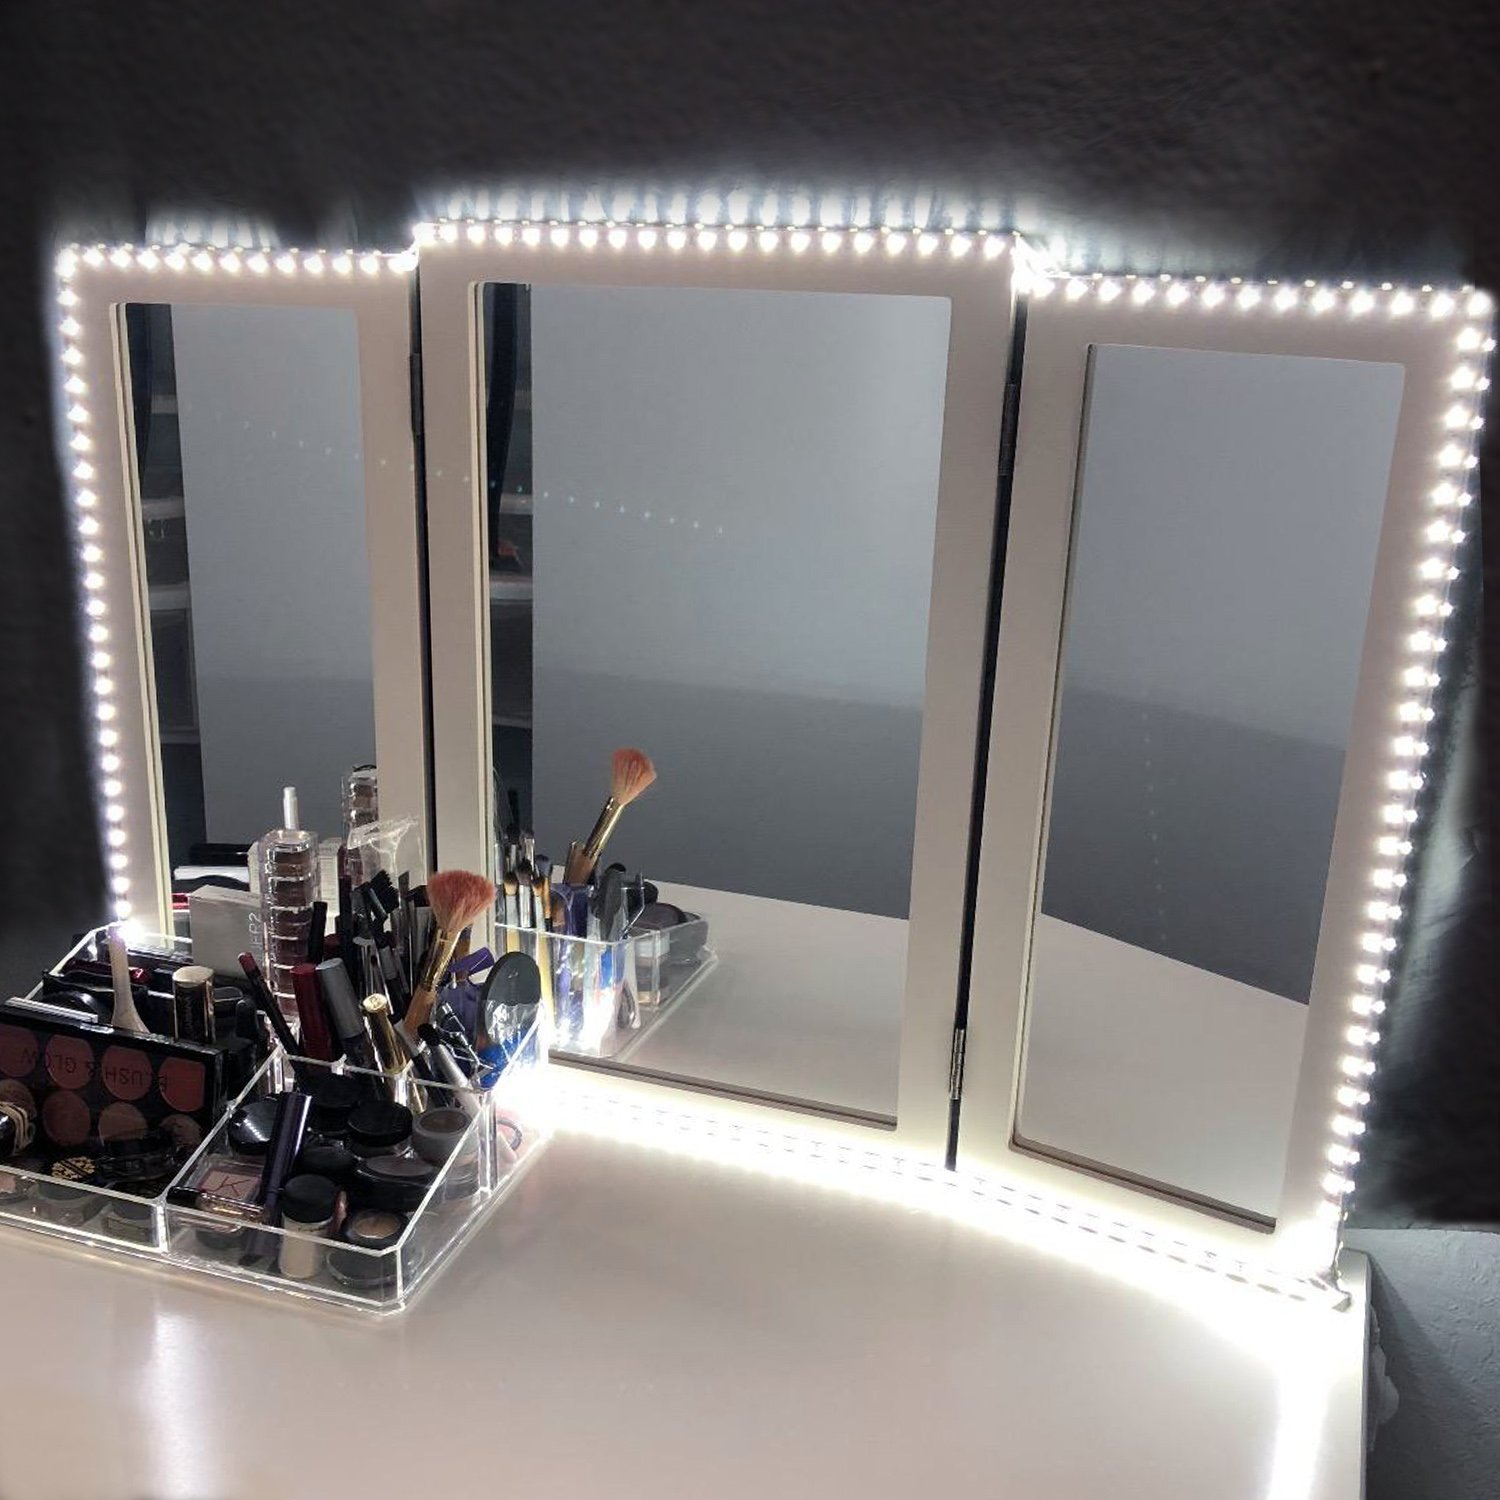 Galleon led vanity mirror lights kit for makeup dressing